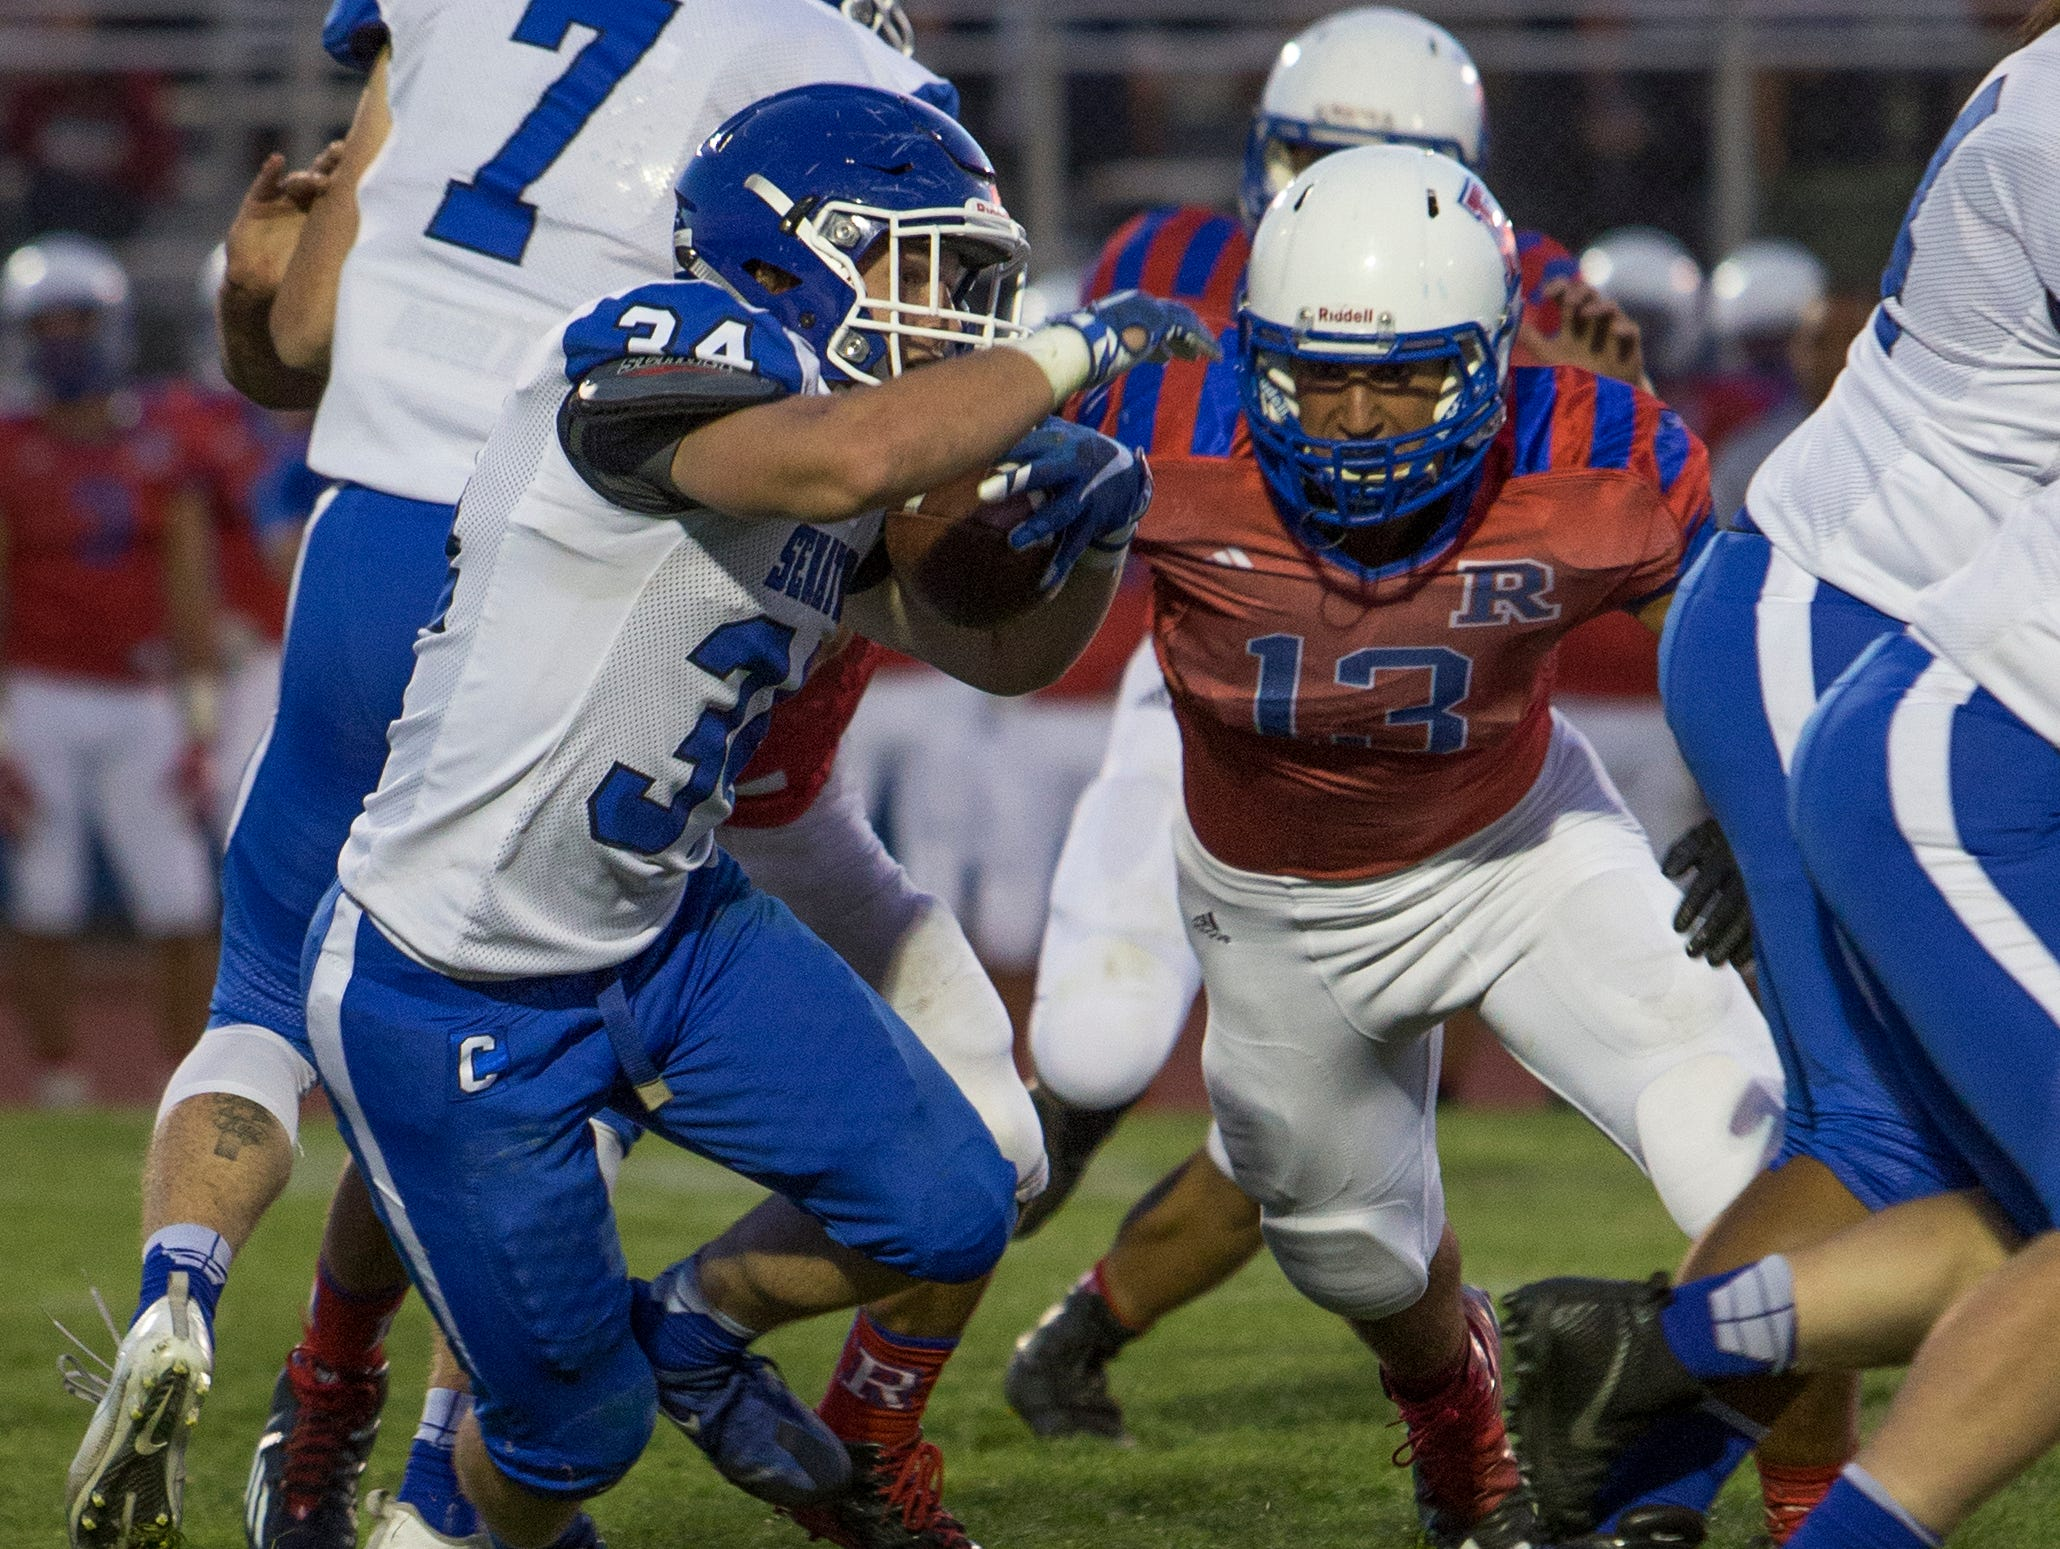 Carson's Abel Carter runs against Reno in a football game earlier this month at Reno.